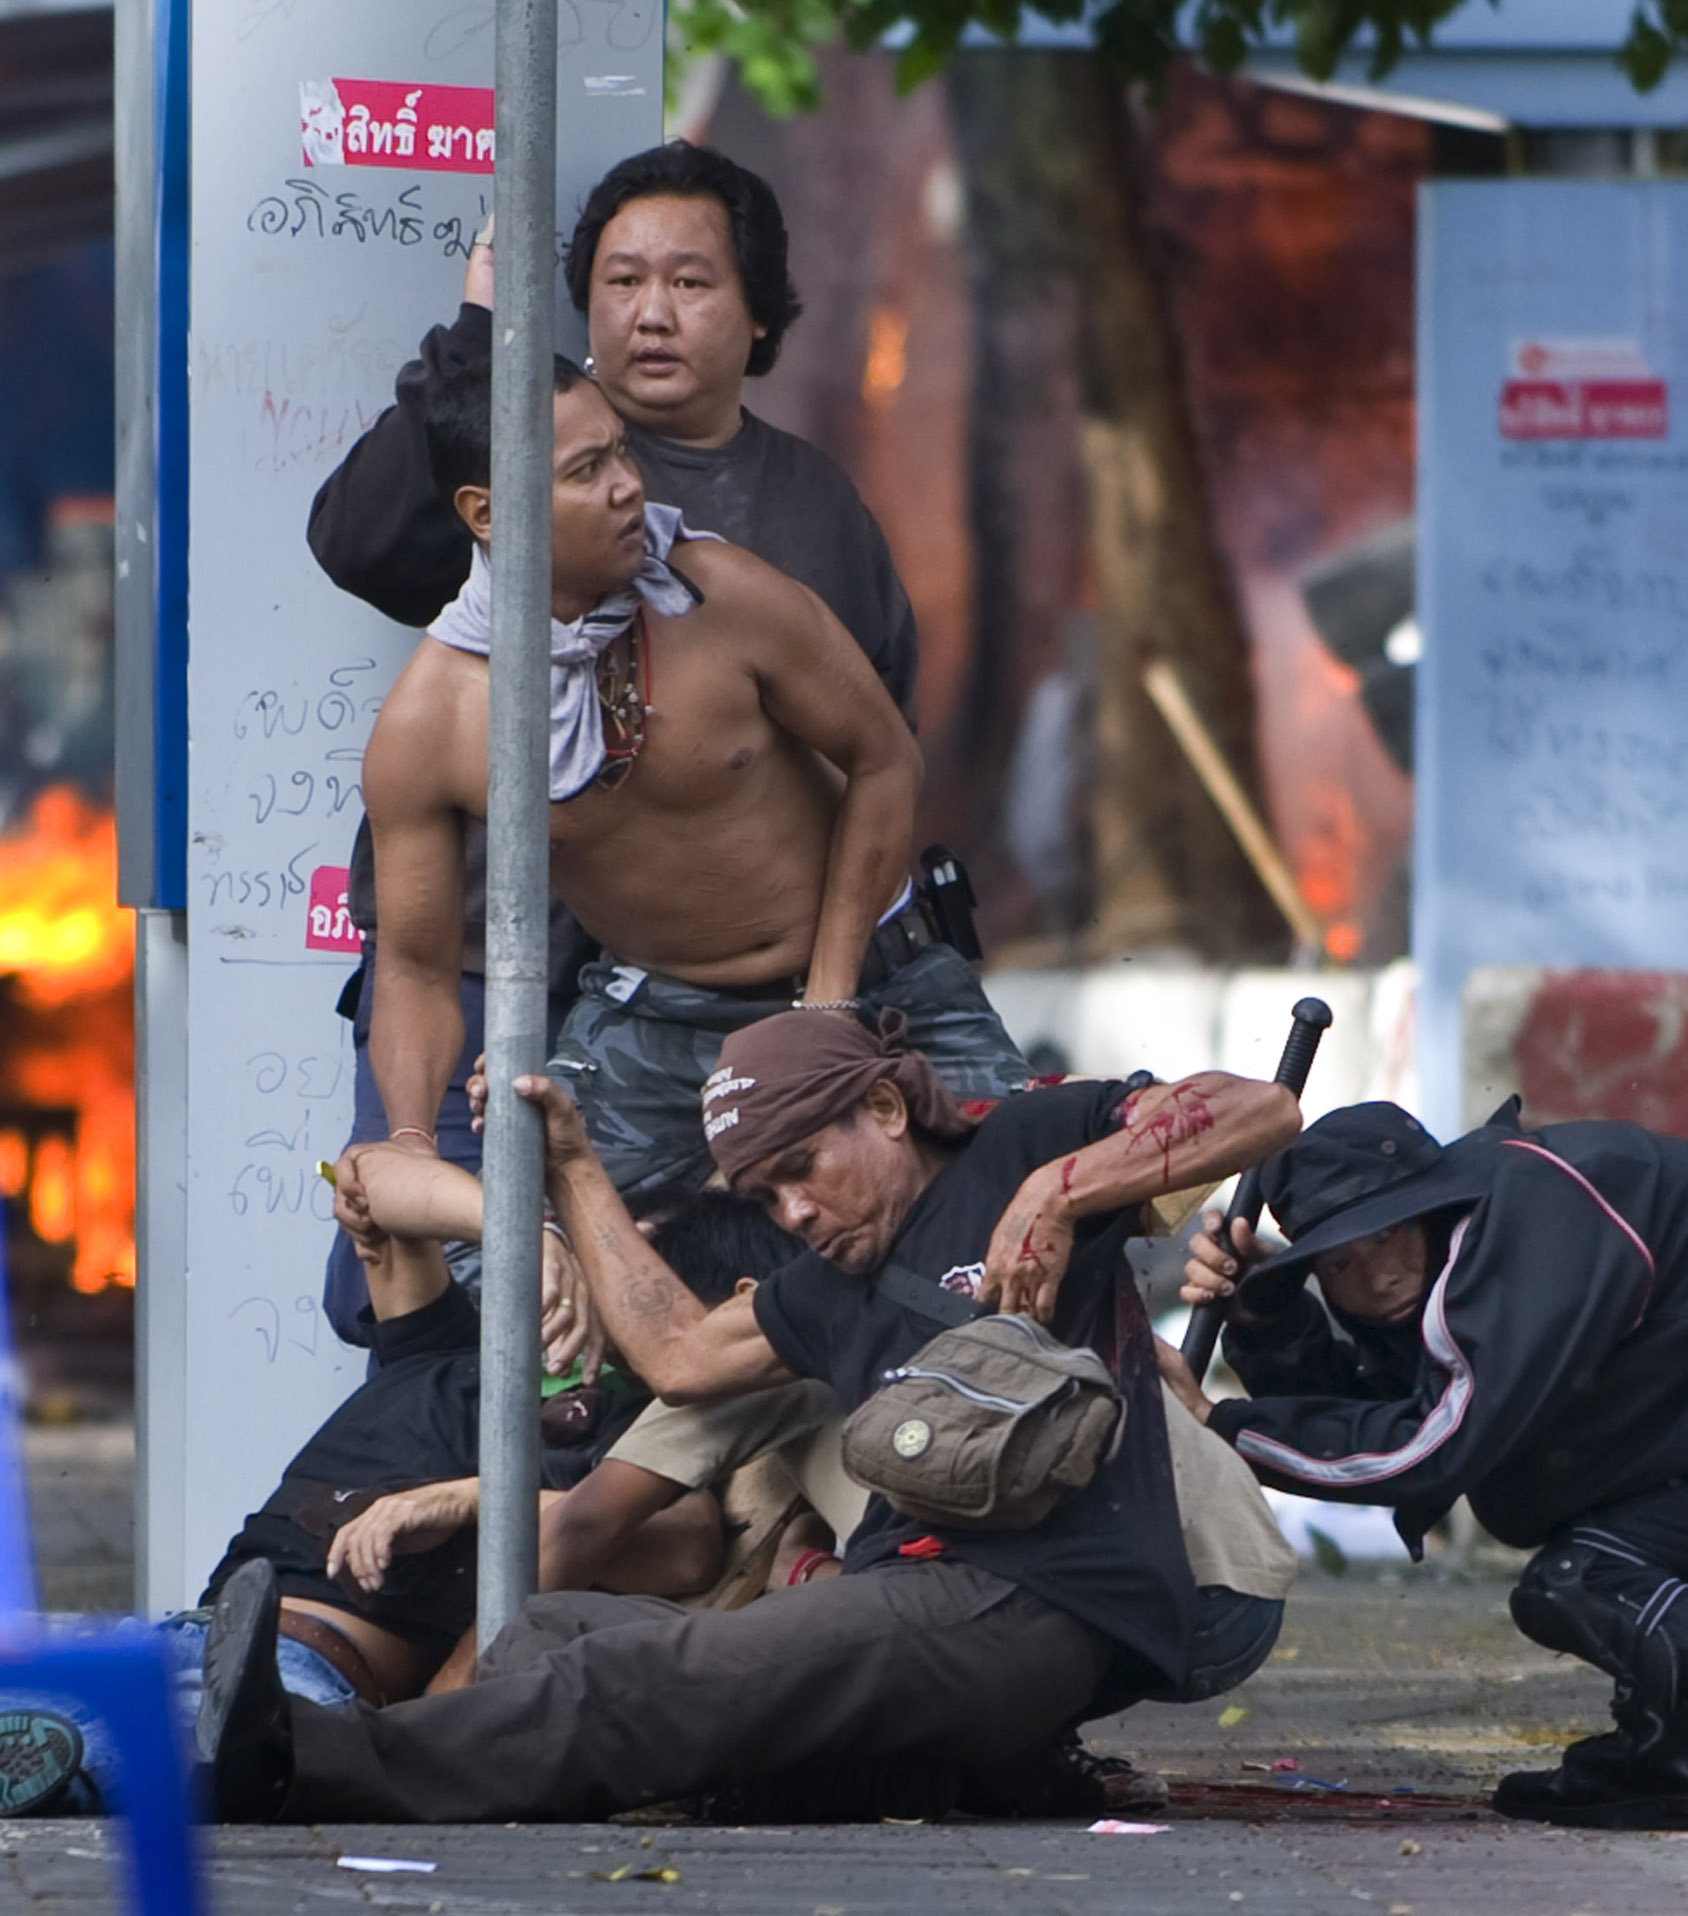 A unarmed man falls after being shot while trying to help his comrades collect a wounded Red Shirt protester. More than 80 civilians were killed during the three-month span.